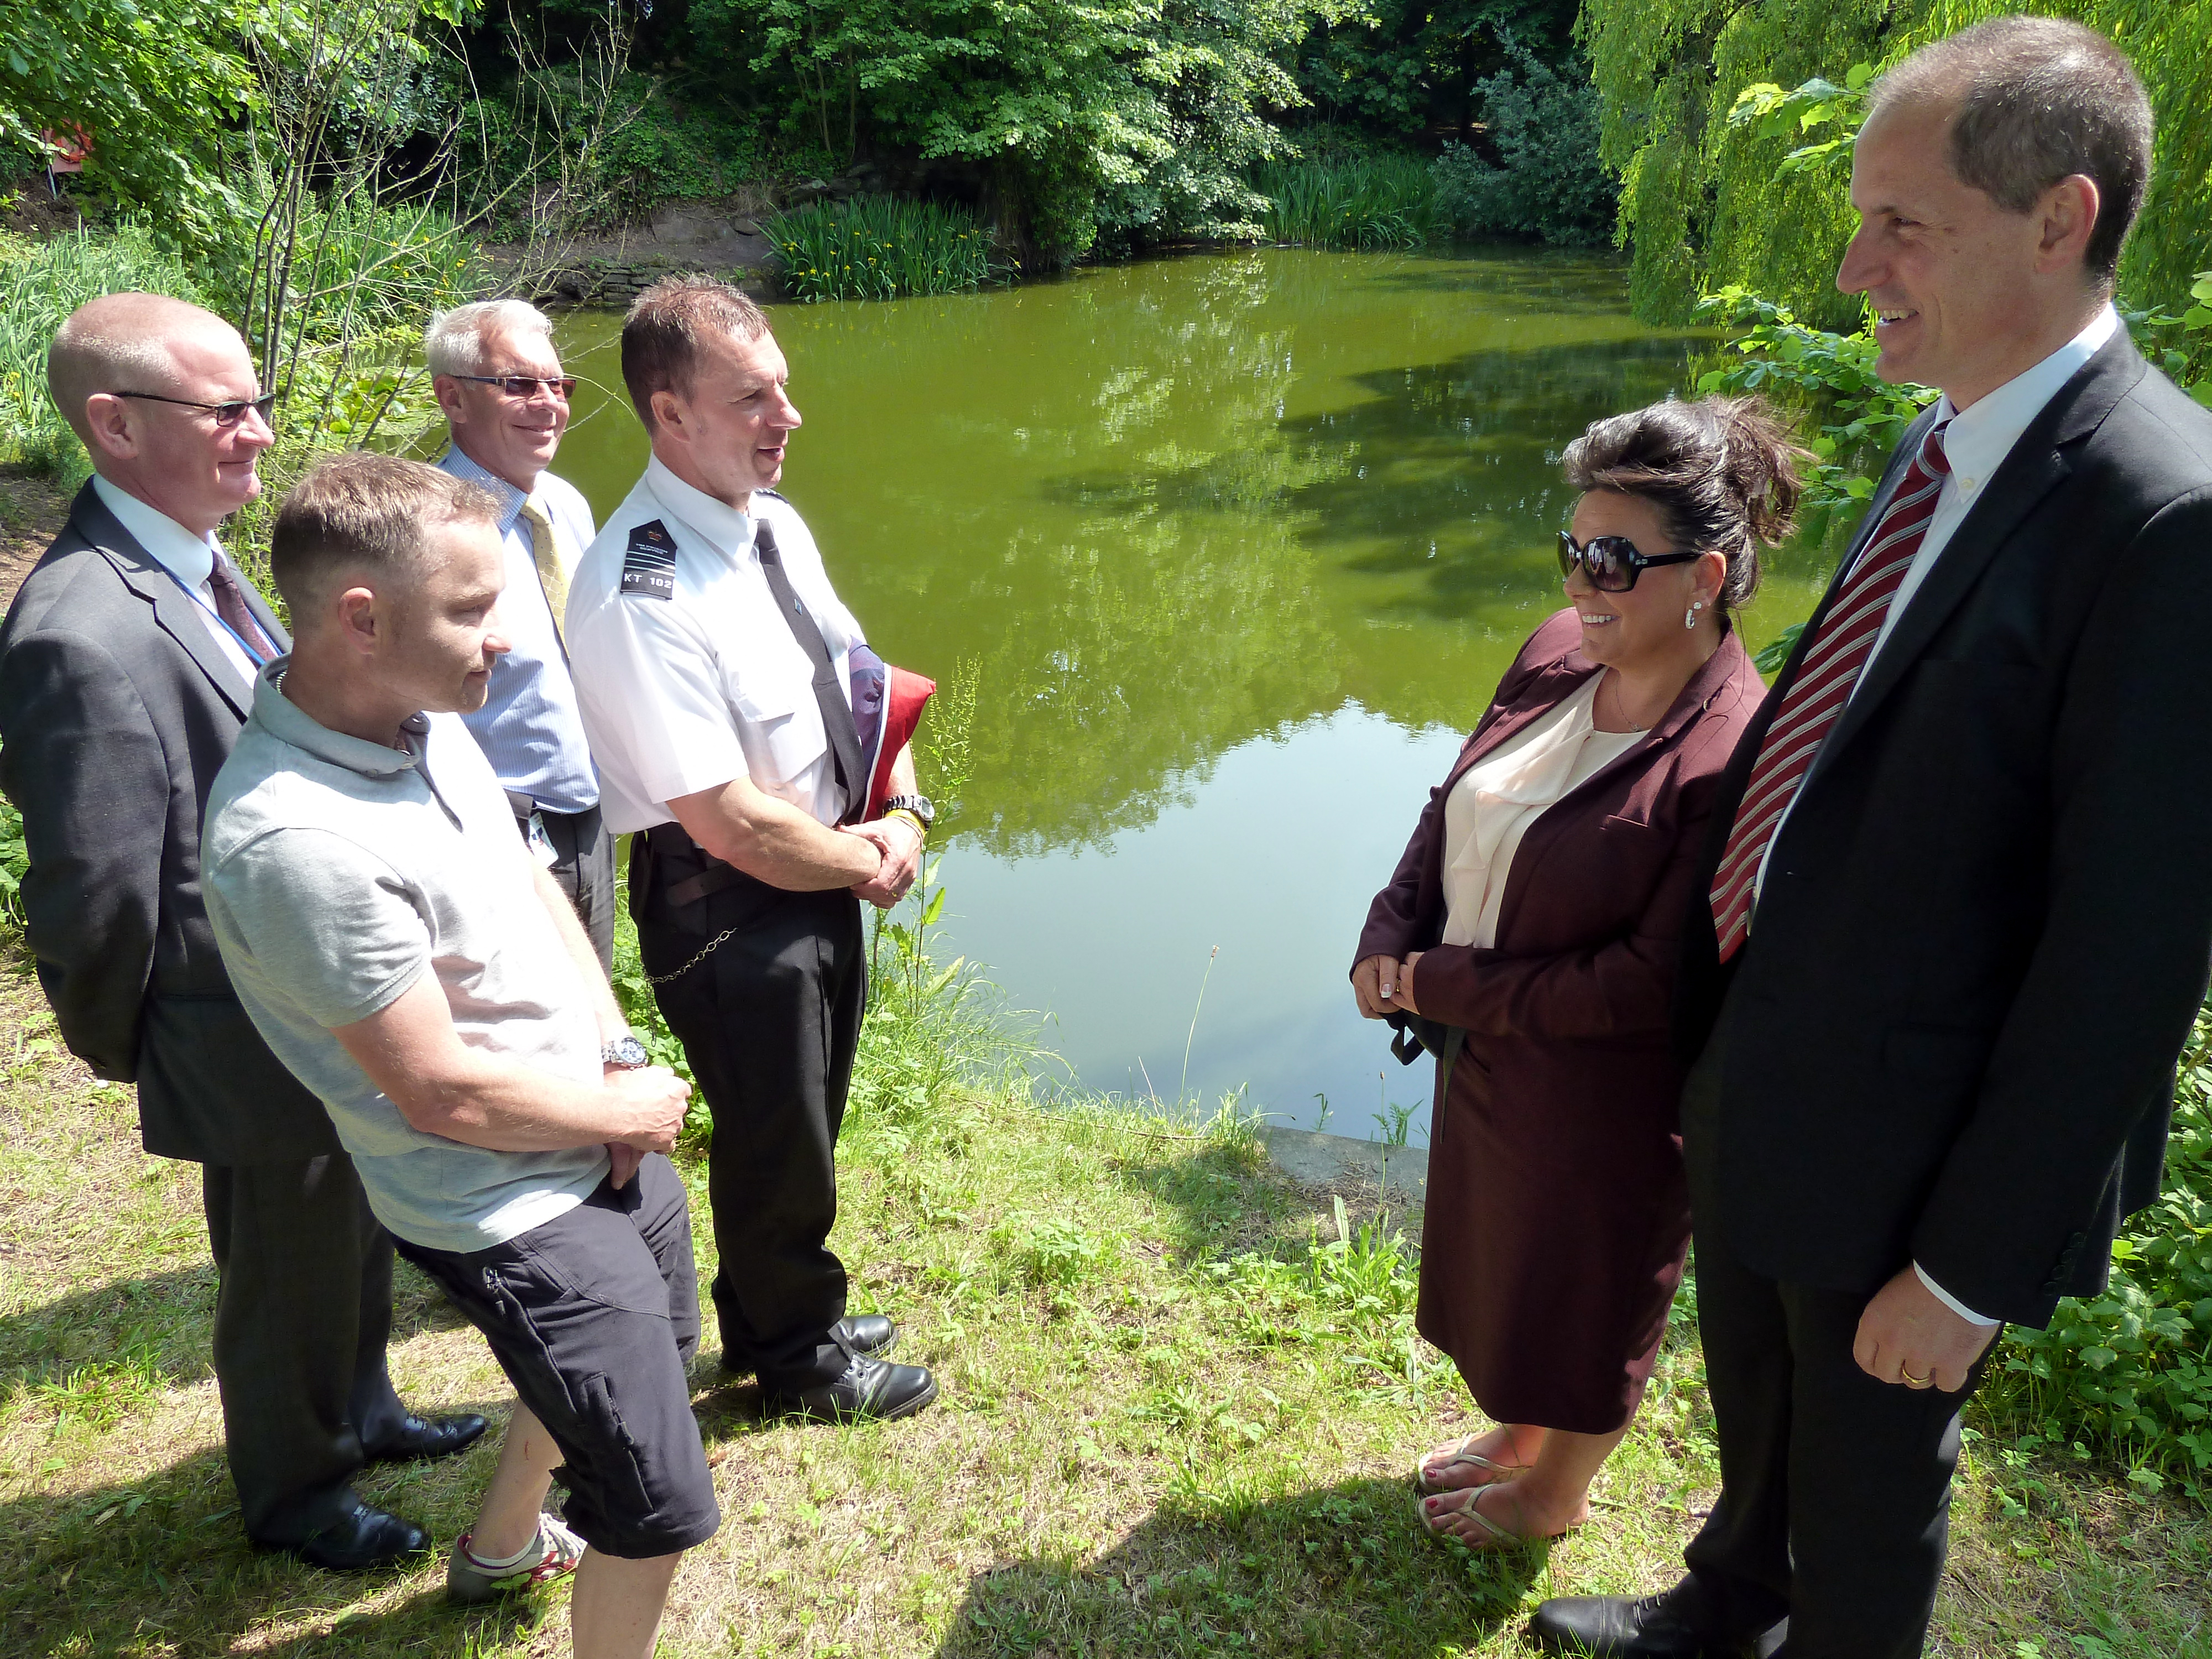 Sefton Central Labour MP Bill Esterson with Ashworth Hospital head of facilities Rhonda Latham, HMP Kennet's Chris Barker and Andrew Brocklehurst, Ashworth Hospital's site manager Chris Marshall and staff nurse and Ashworth Cricket Club chairman Richie Hooton.